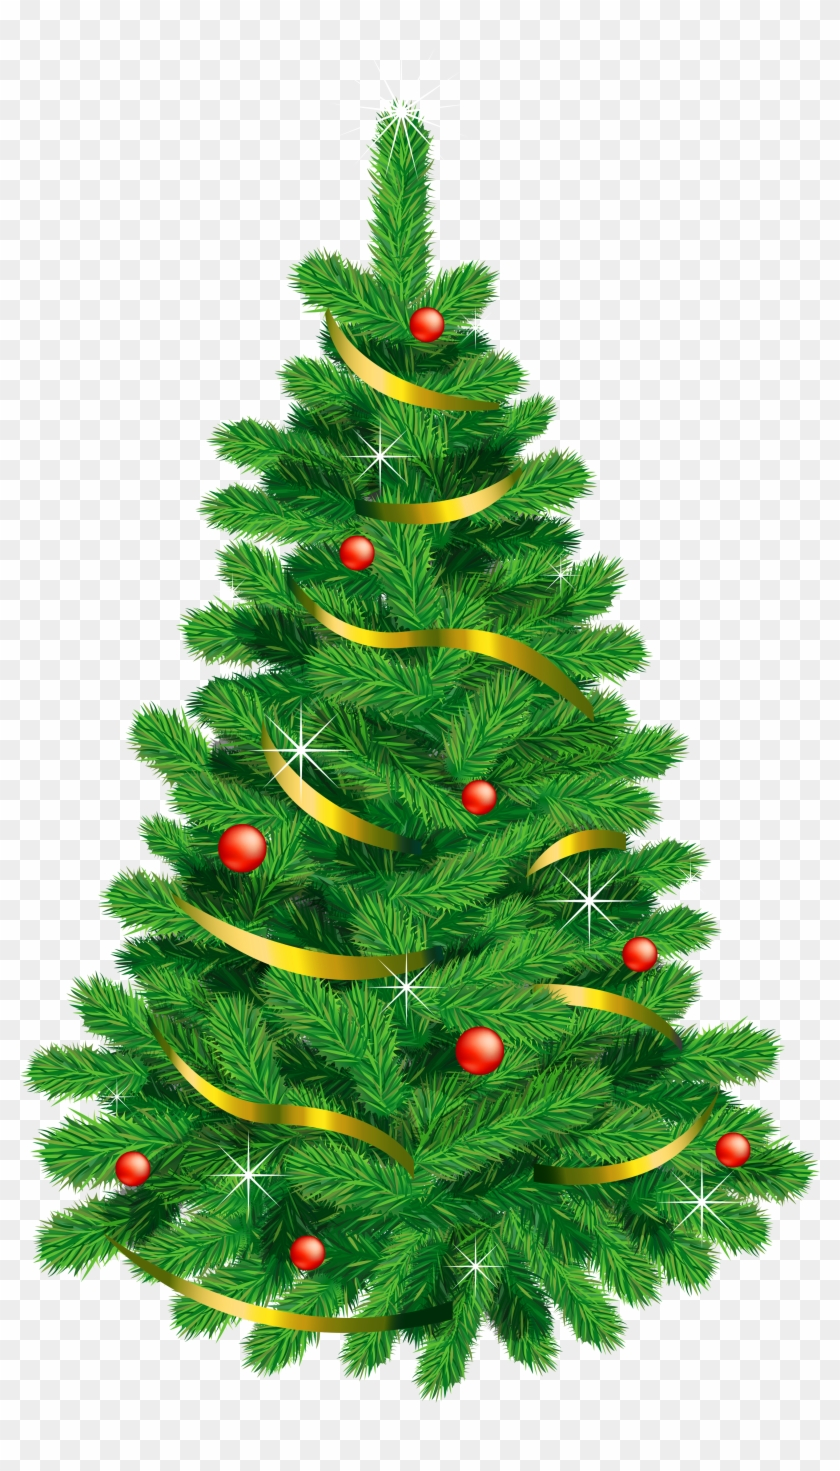 Transparent Green Deco Christmas Tree - Tree Gif Images Free Download #42637